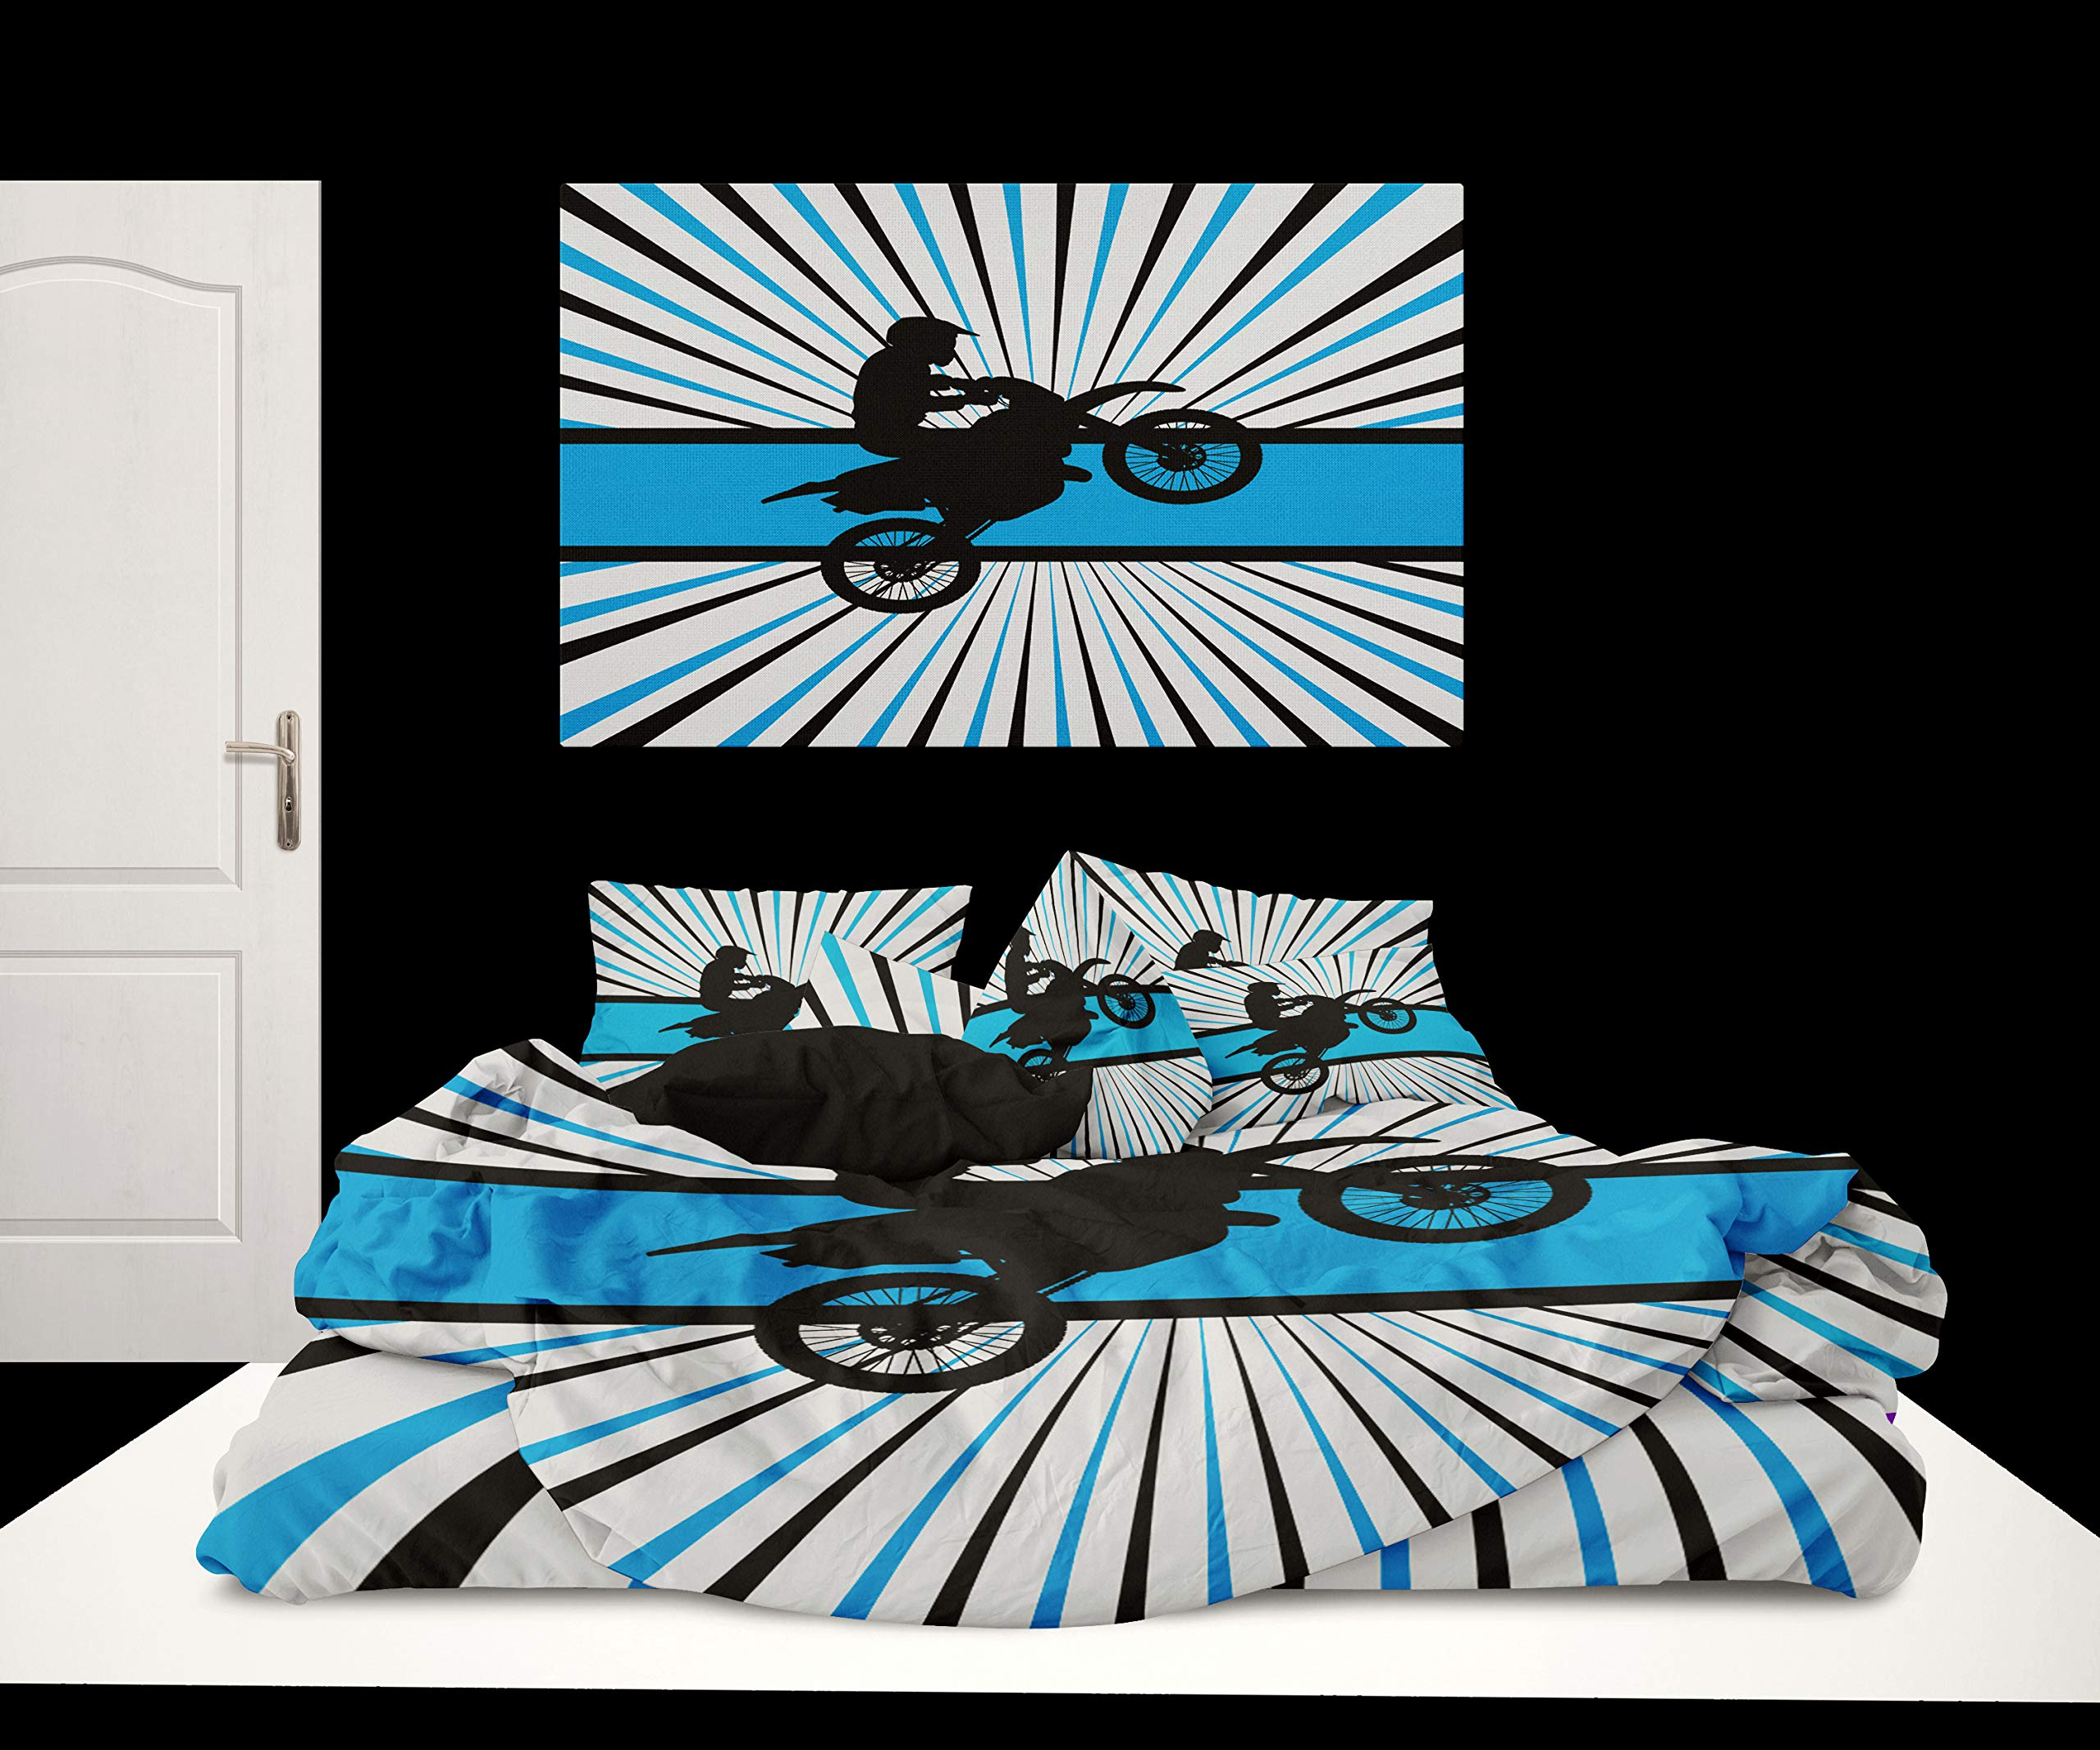 CDM product Extremely Stoked USA Blue Motocross Bedding Black and White small thumbnail image